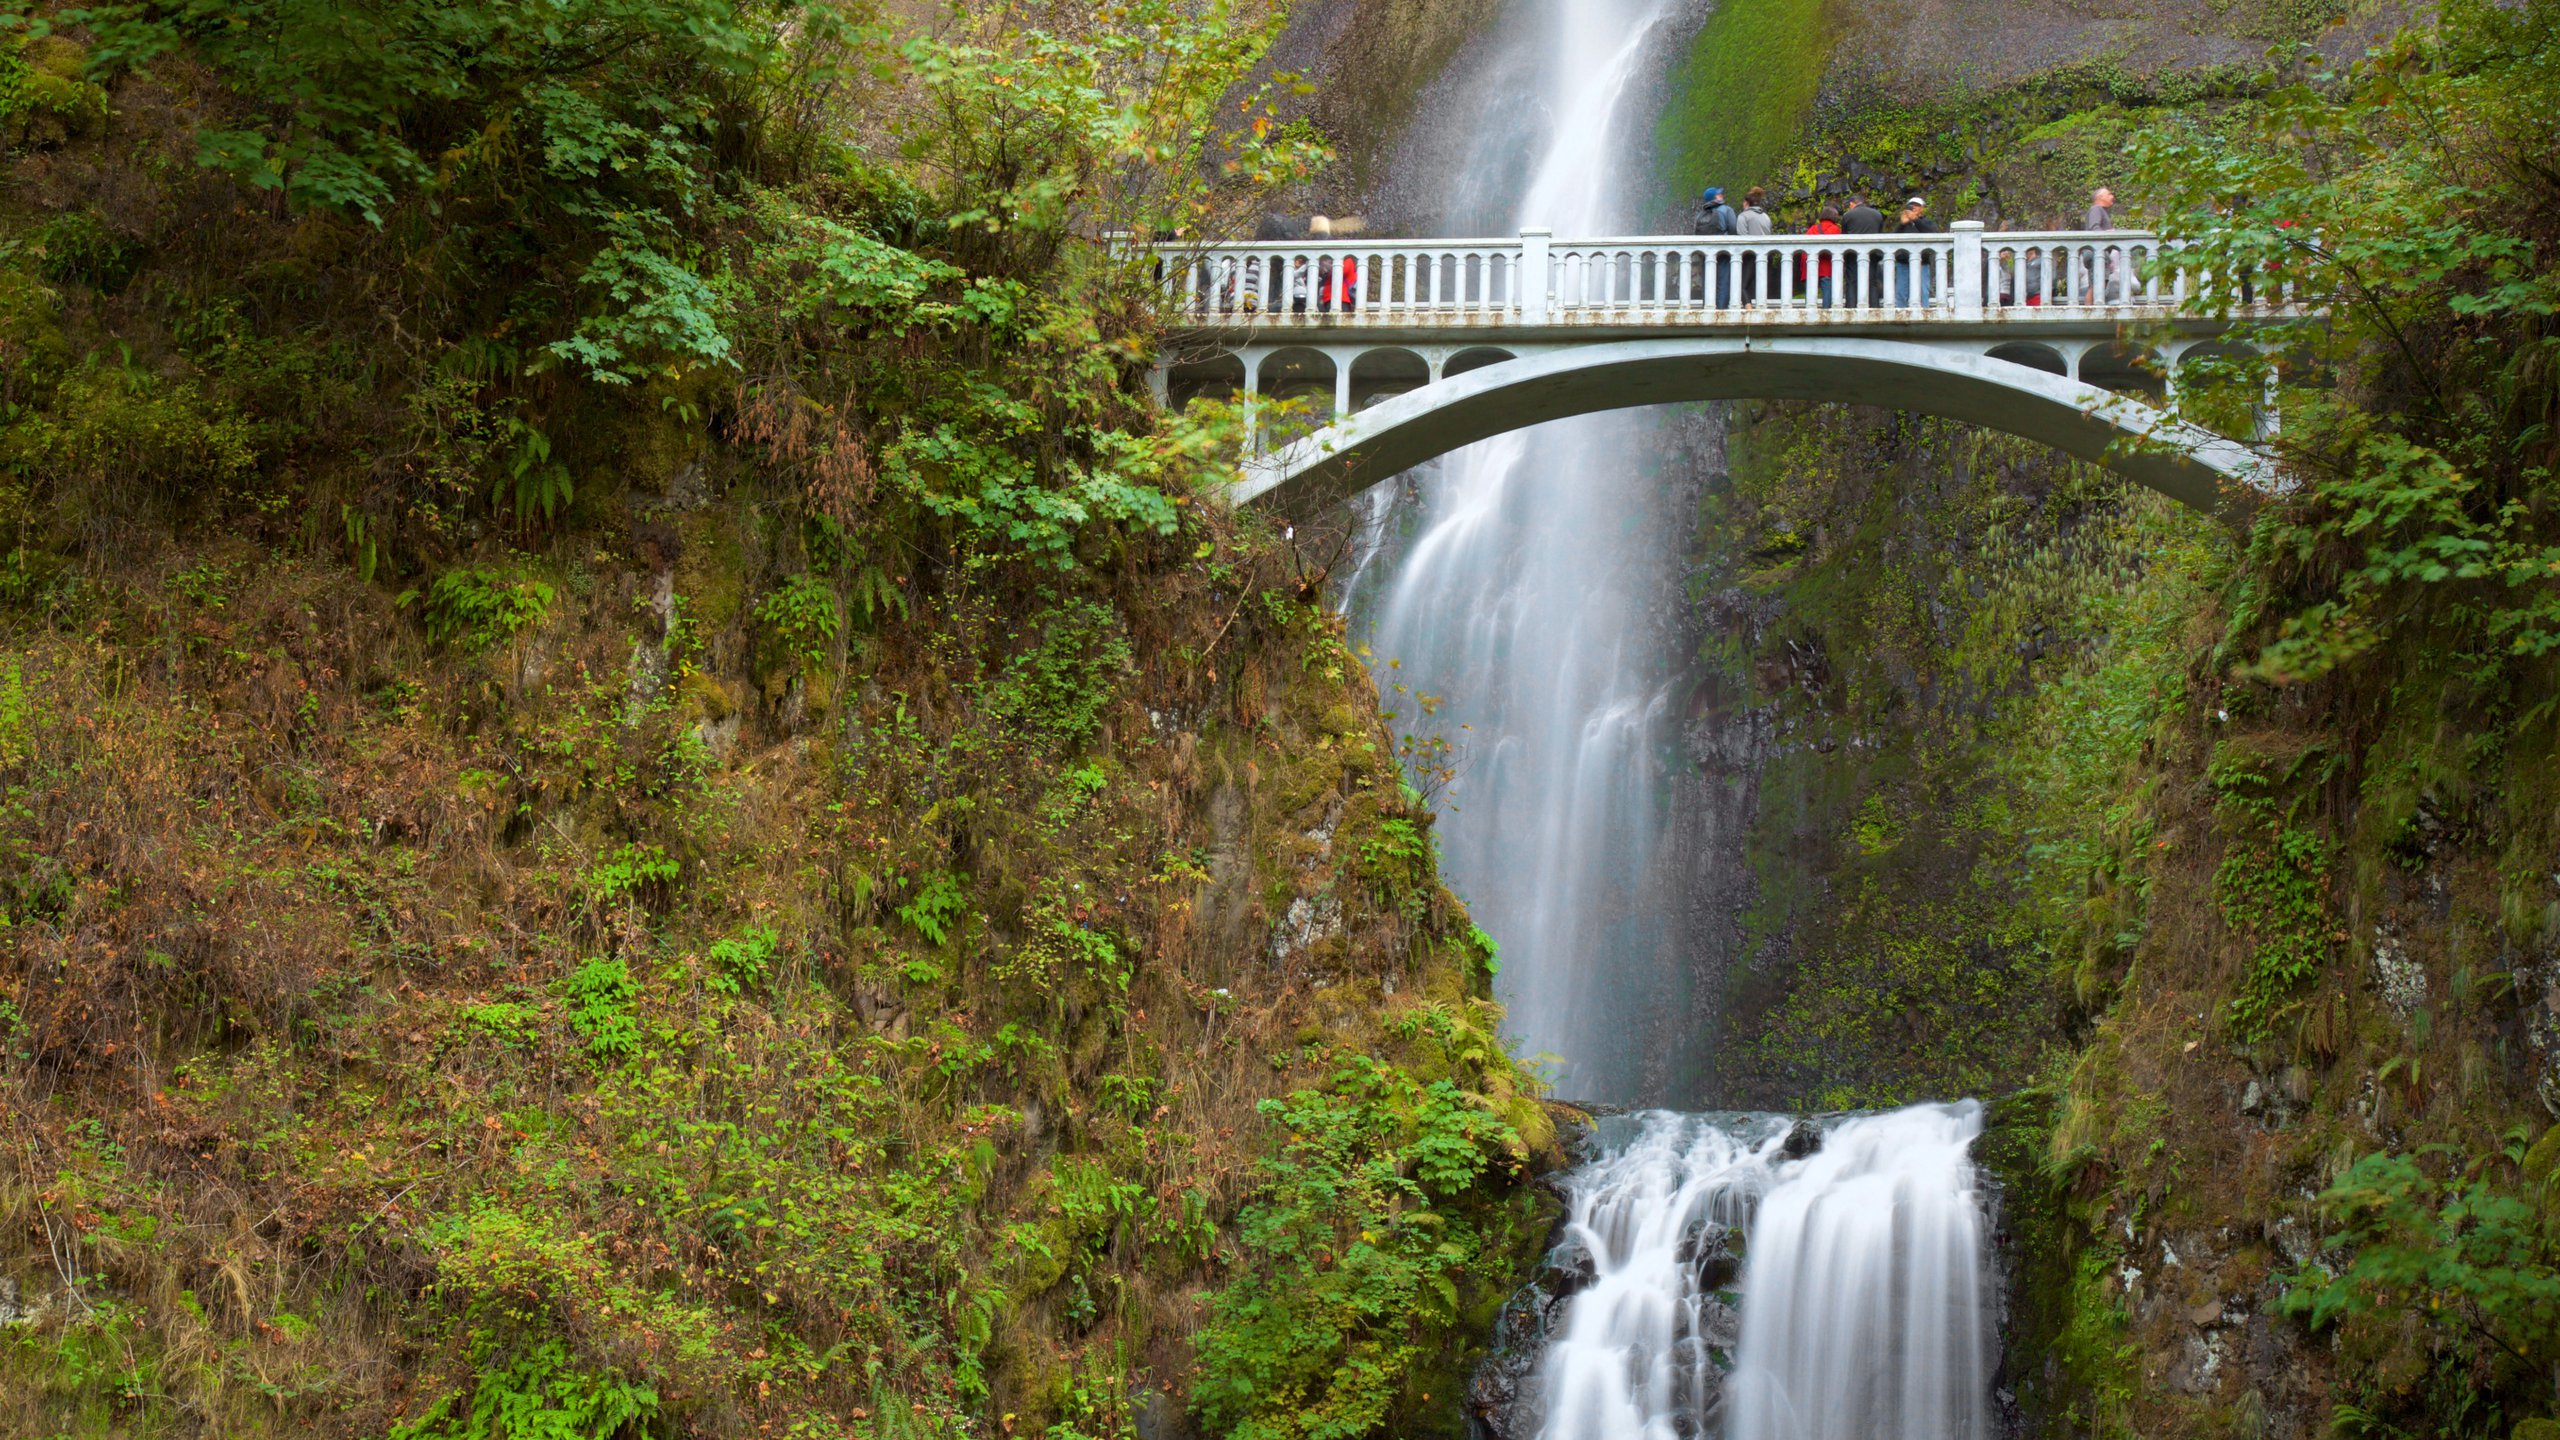 High Res Multnomah Falls Wallpaper 10 Best Hotels Closest To Multnomah Falls In Portland For